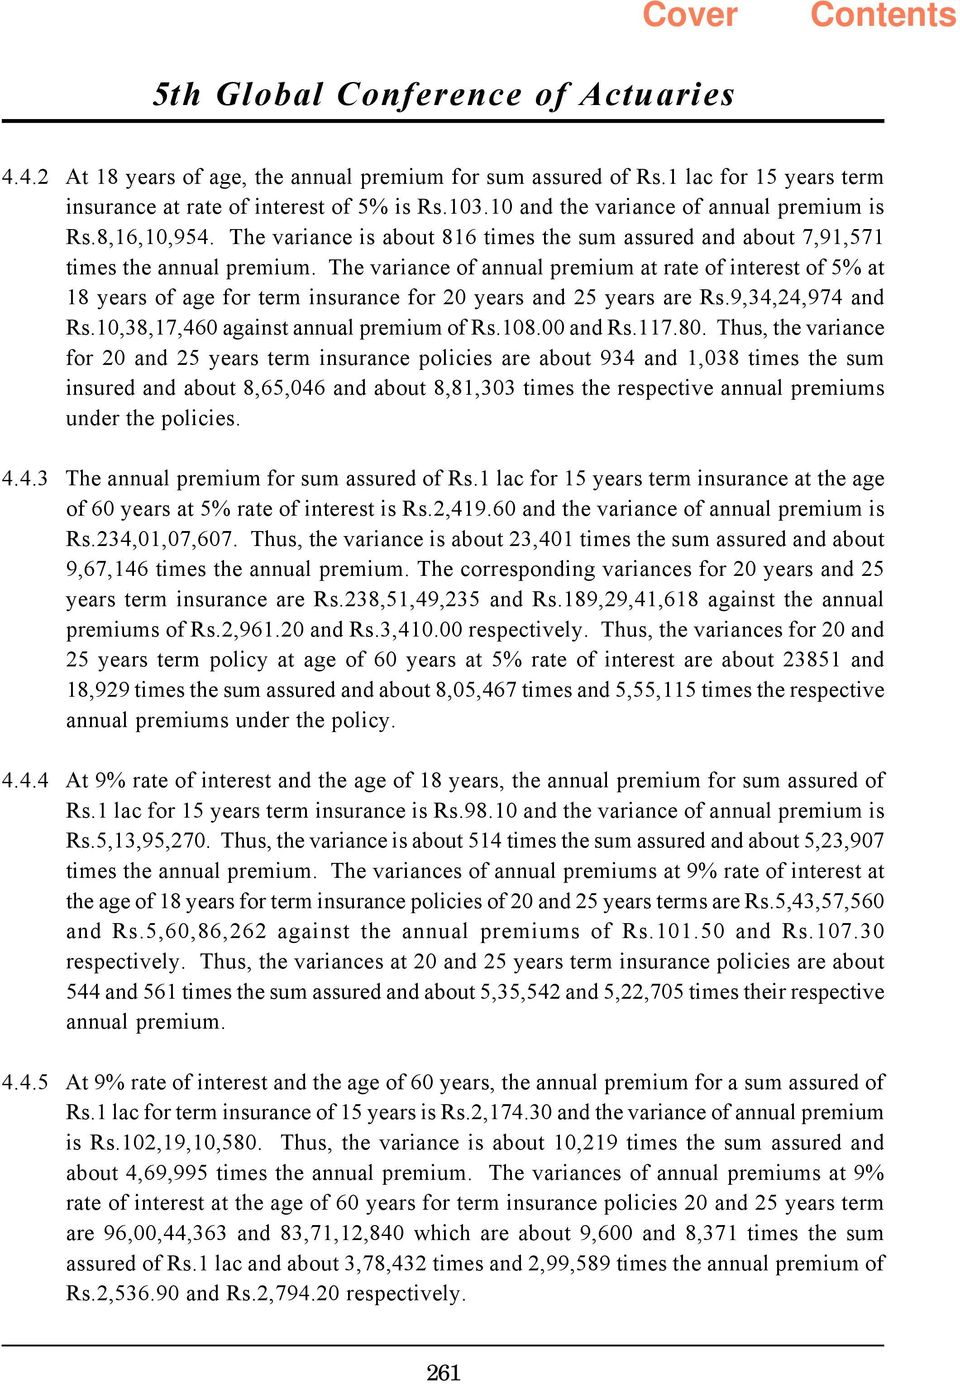 The variance of annual premium at rate of interest of 5% at 18 years of age for term insurance for 20 years and 25 years are Rs.9,34,24,974 and Rs.10,38,17,460 against annual premium of Rs.108.